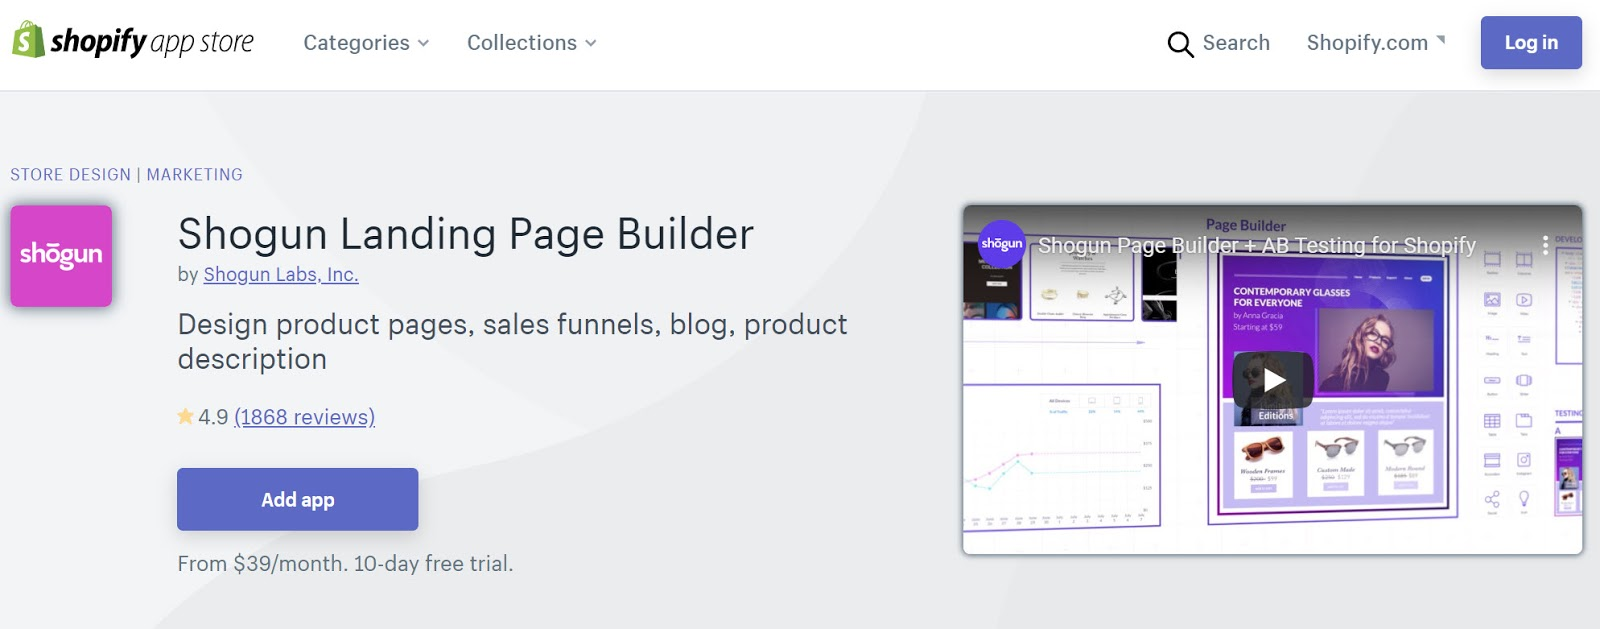 Shogun Landing Page Builder on the Shopify App Store